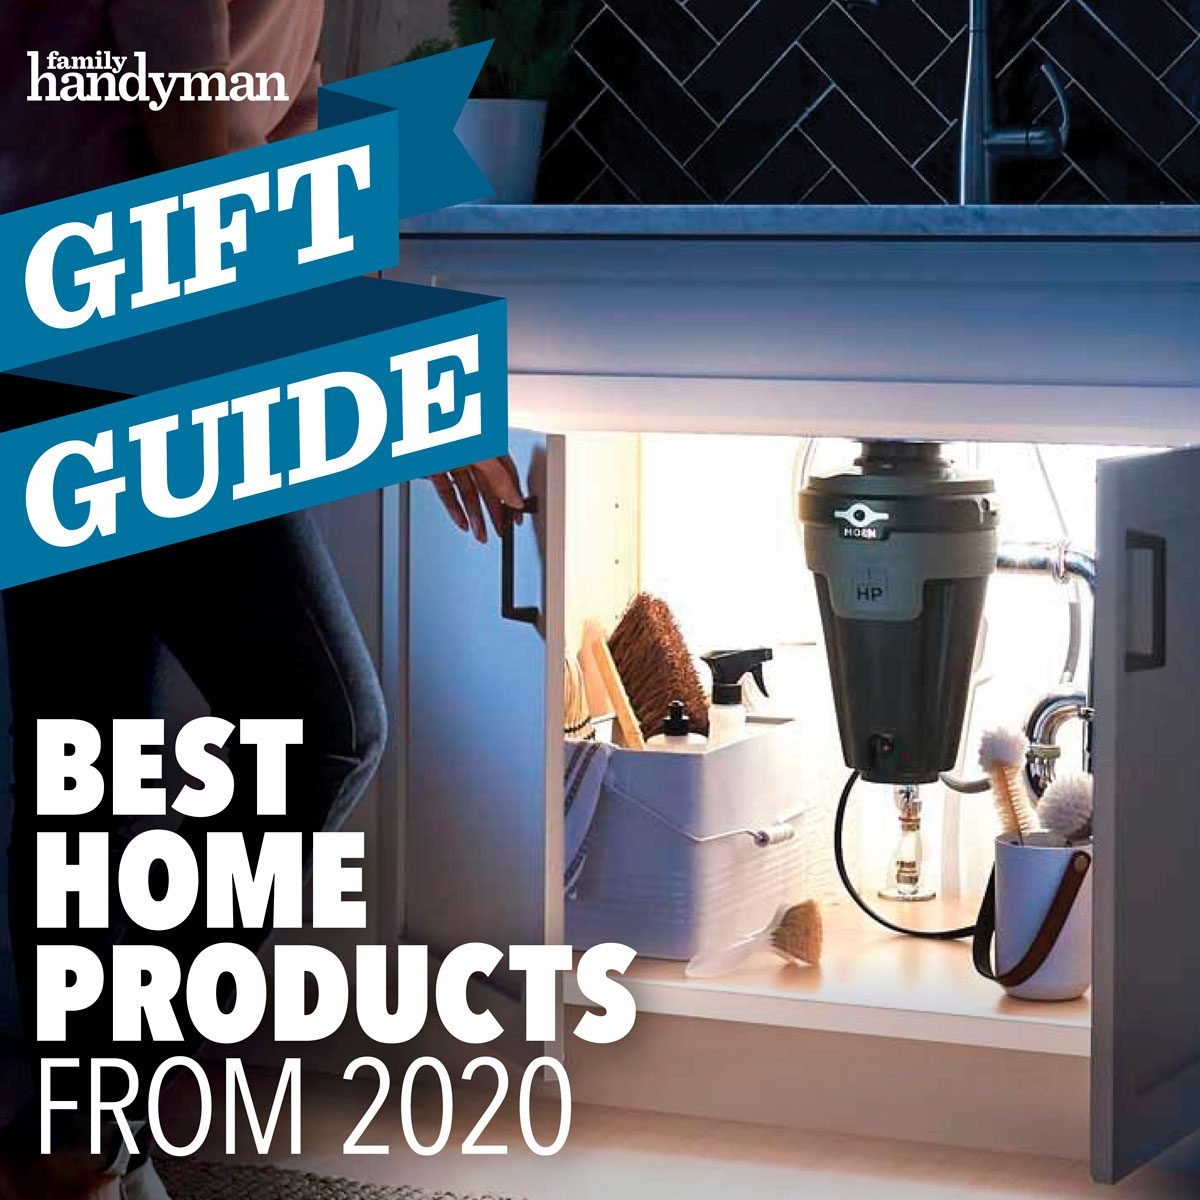 Best Gifts for Homeowners in 2020